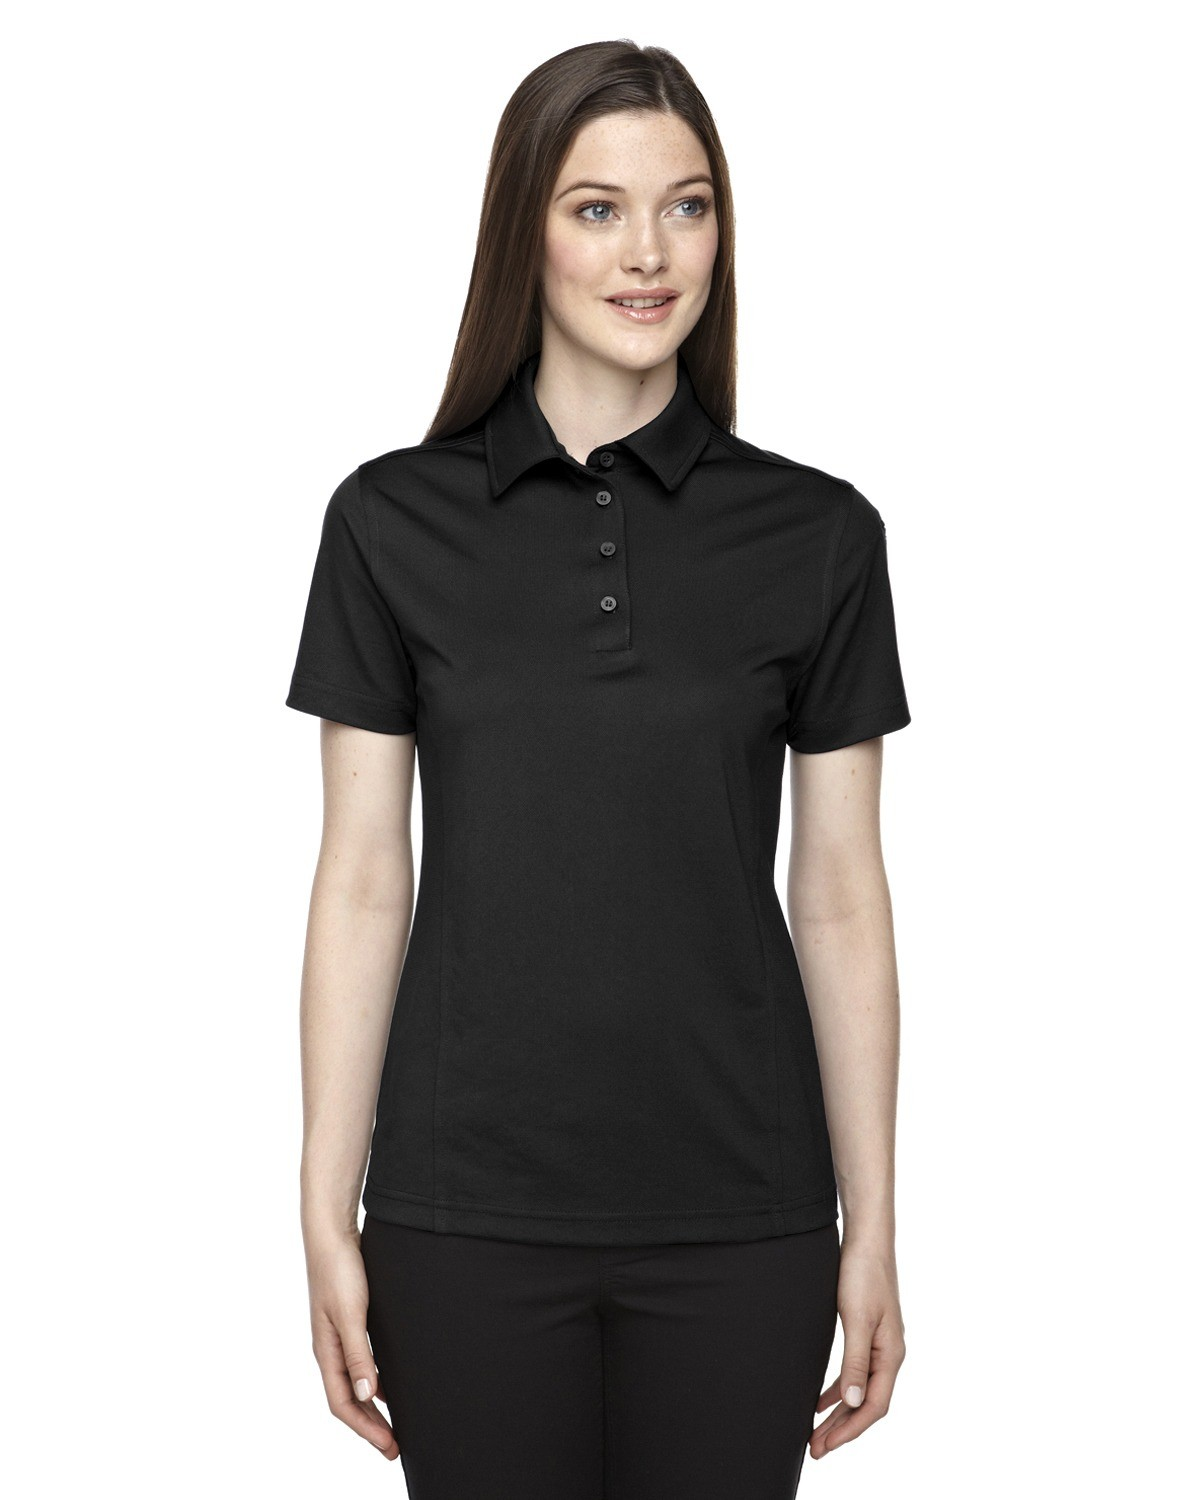 Ladies' Eperformance™ Shift Snag Protection Plus Polo